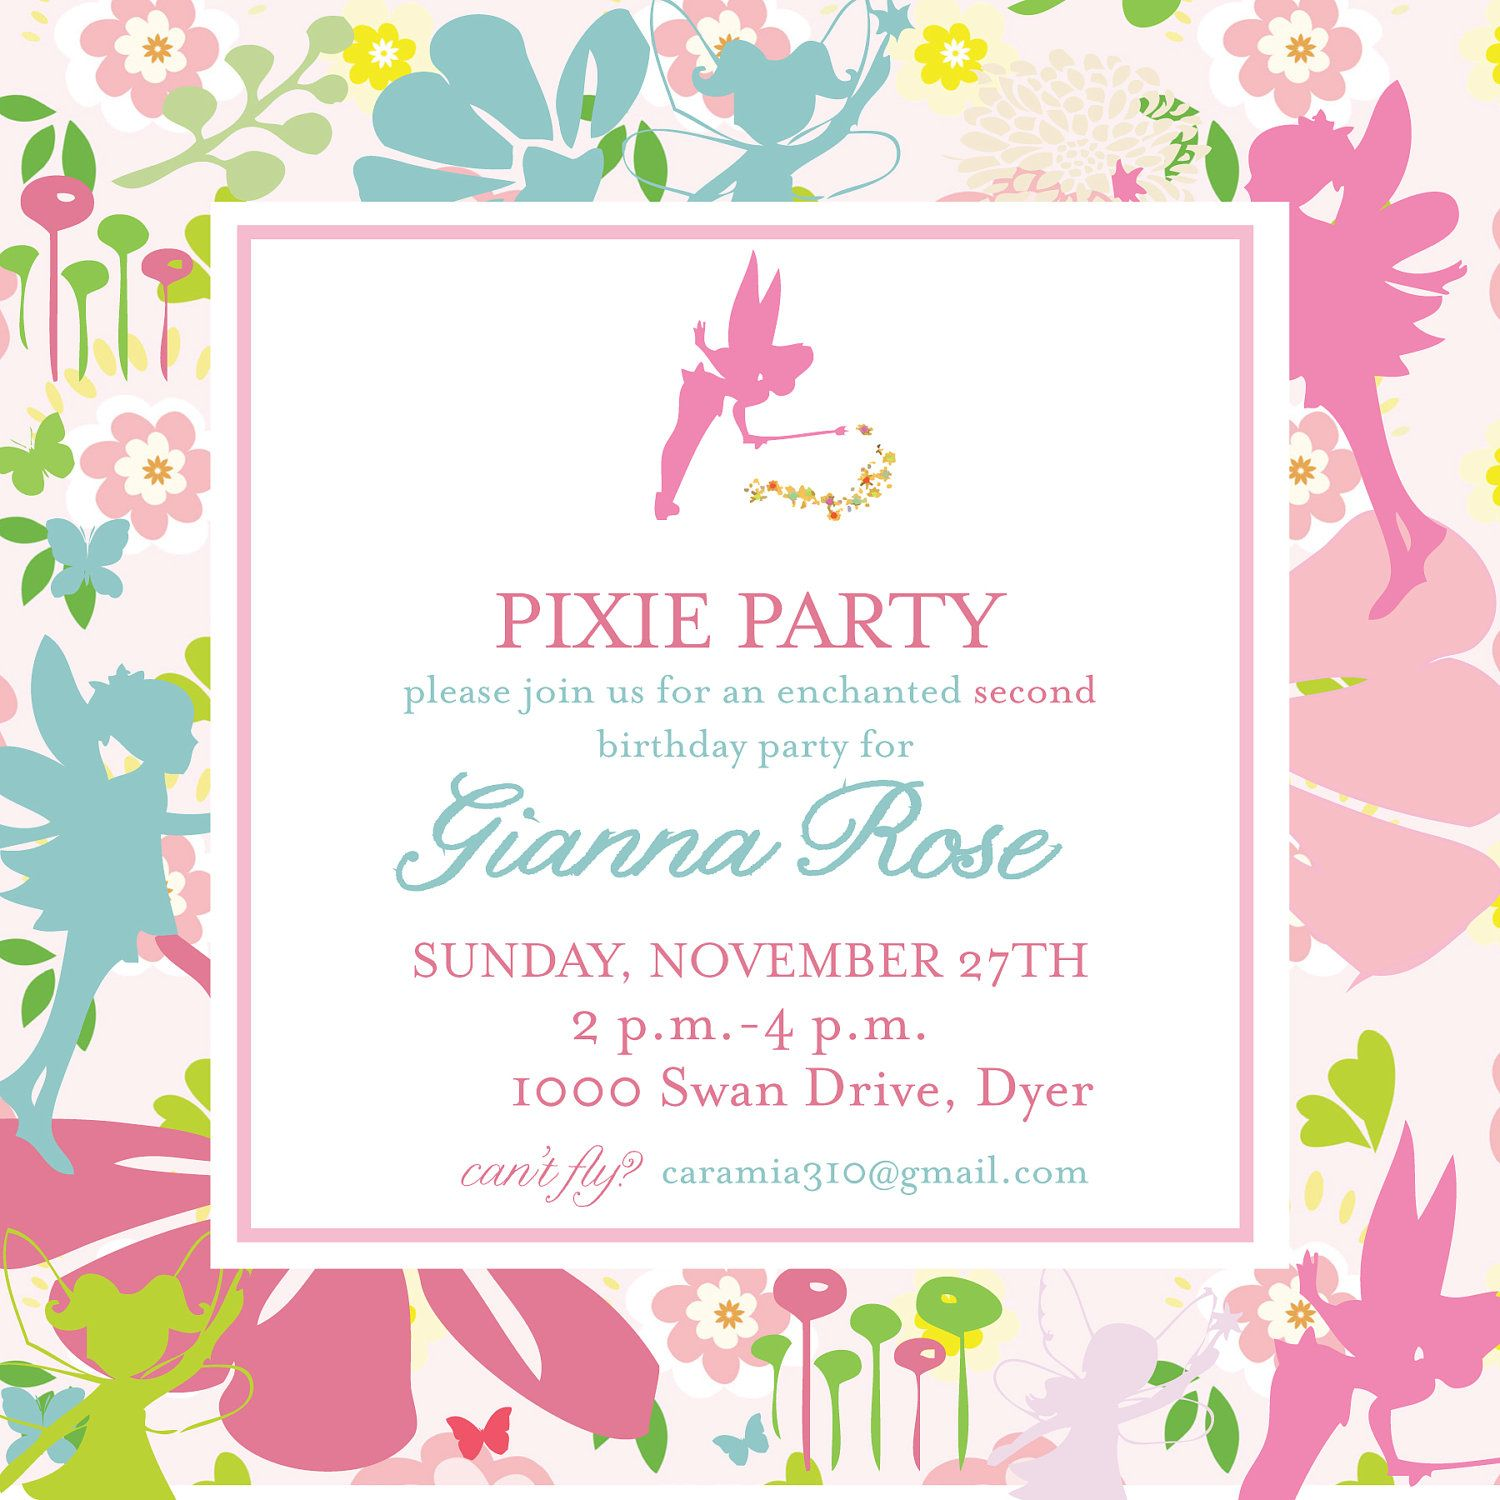 Pixies and pirates invitation tinkerbell pirate invitations fairy birthday party pixies and pirates invitation tinkerbell filmwisefo Images